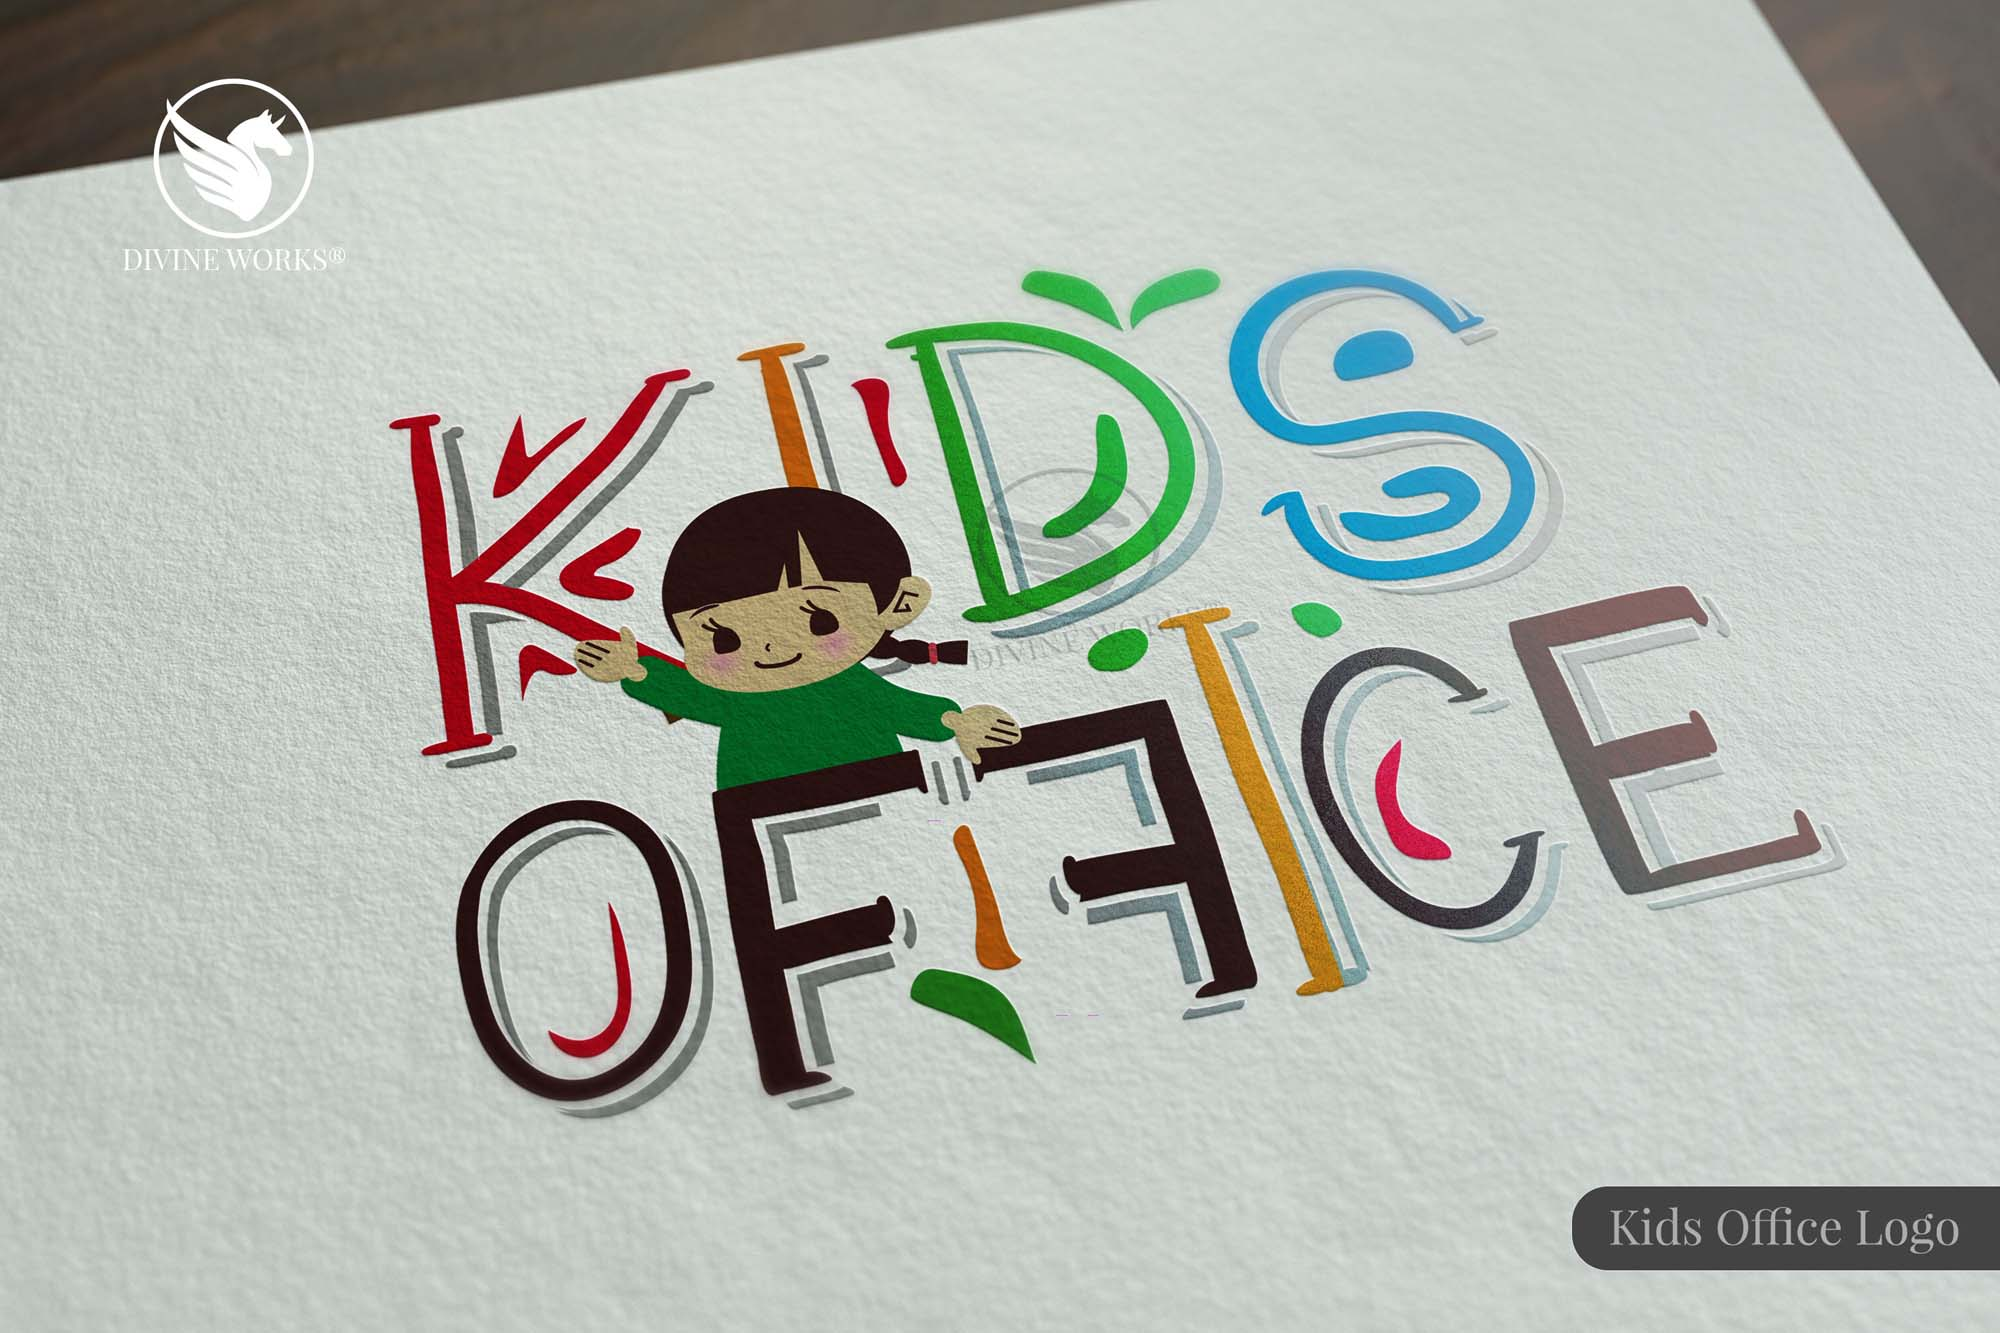 Kids Ofiice Logo by Divine Works